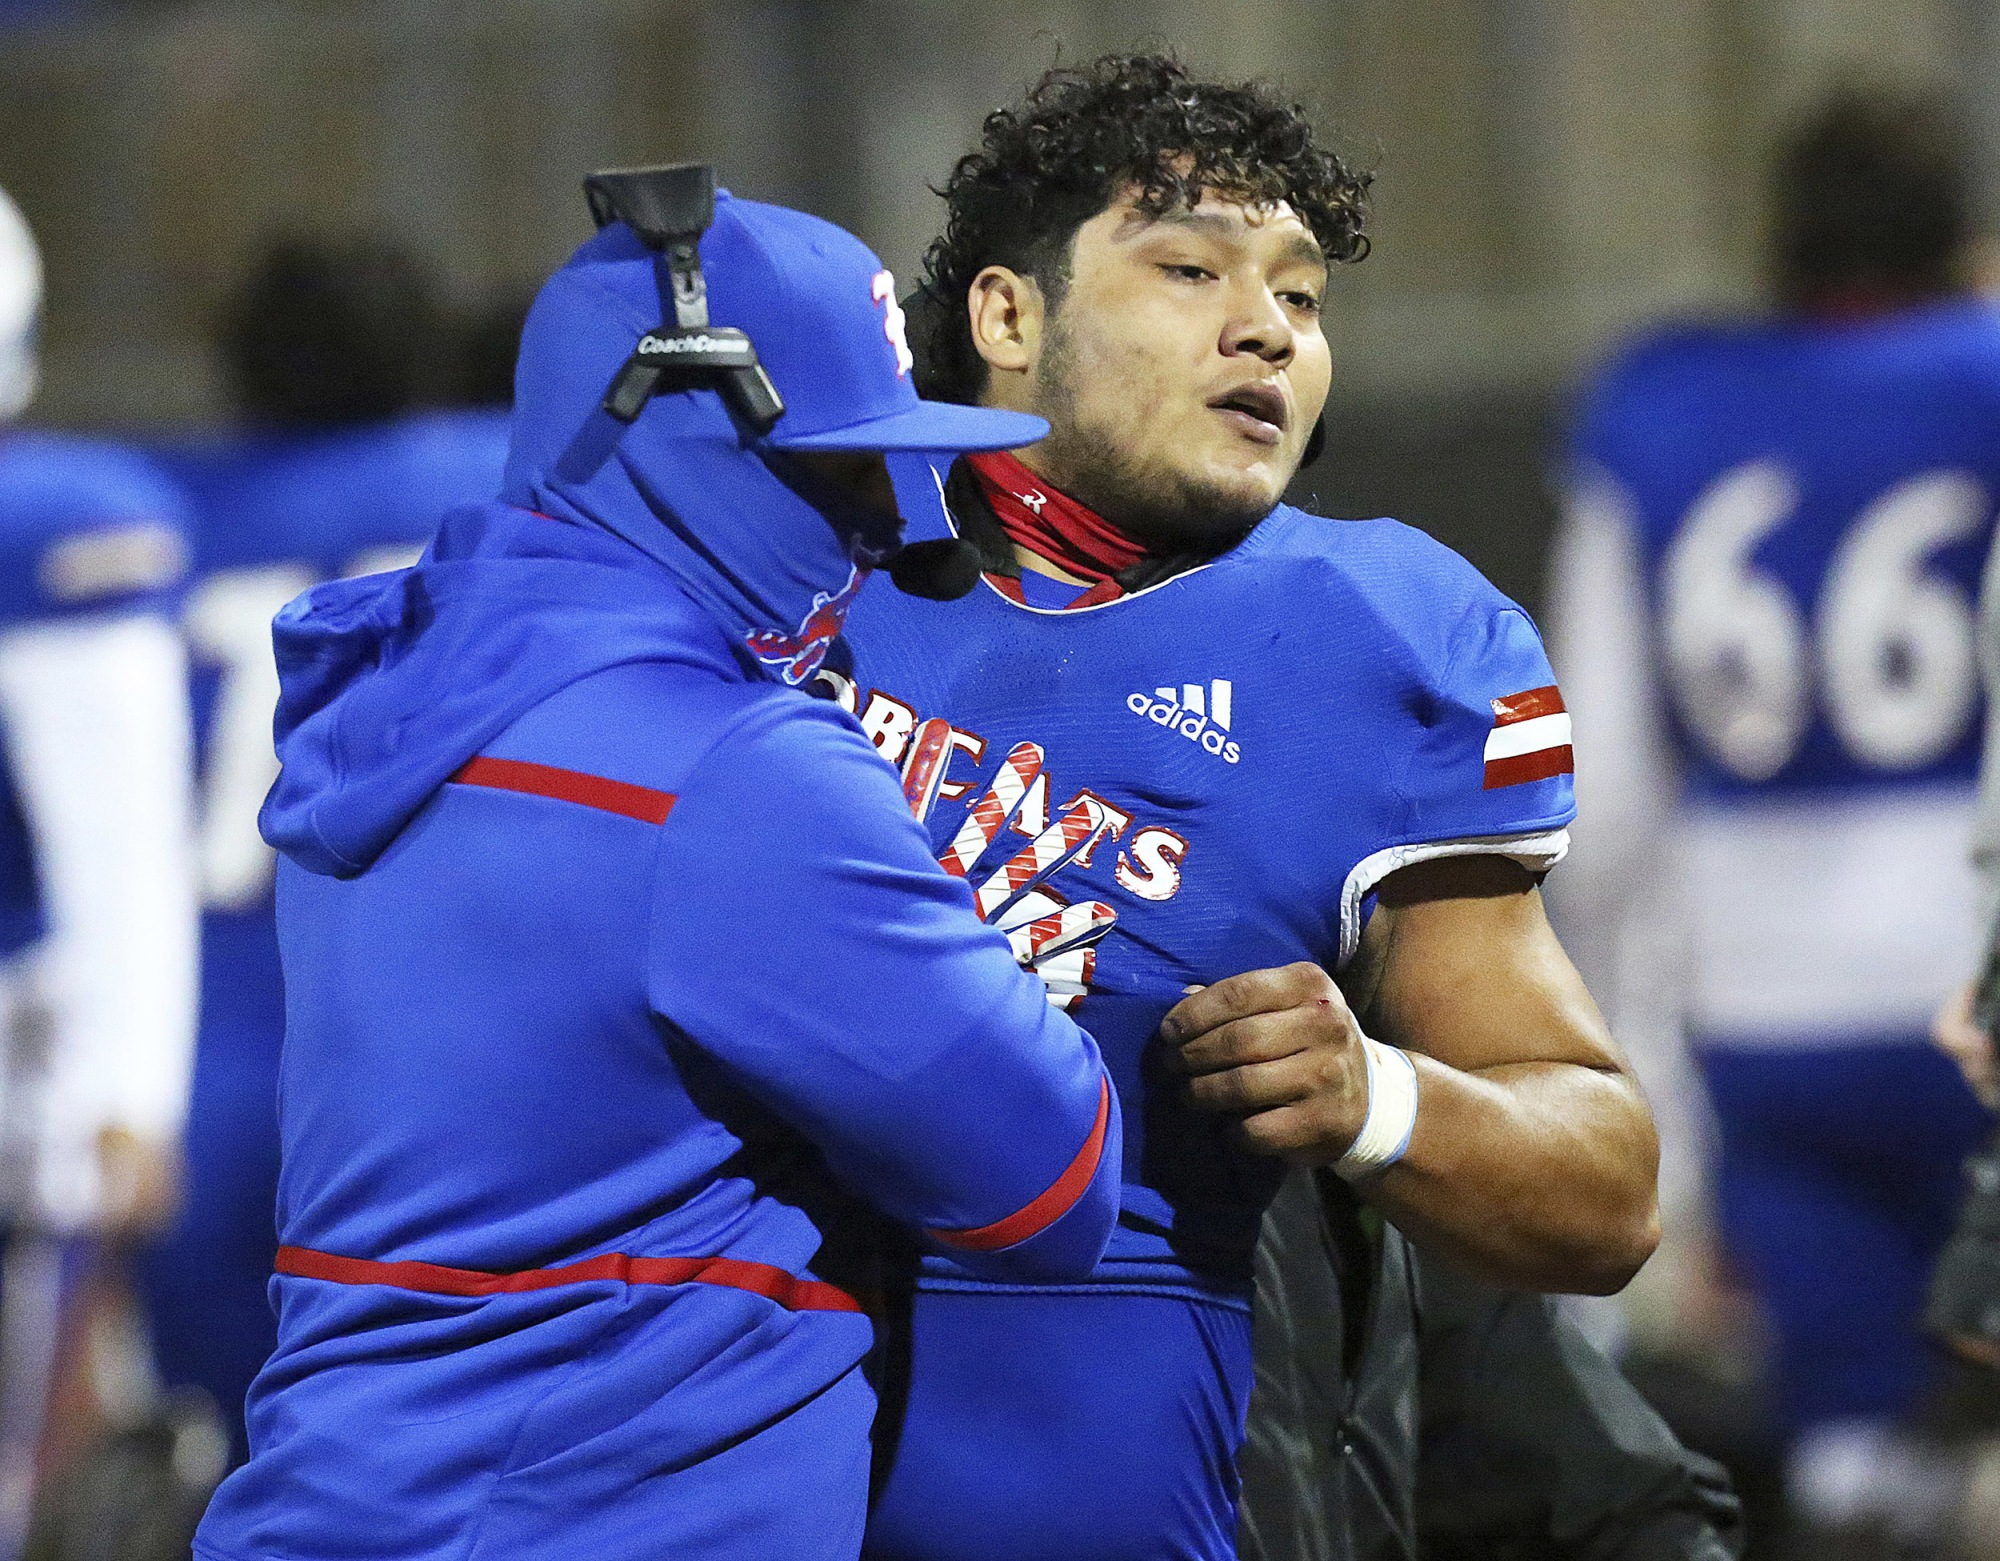 Texas high school football player tackles referee after being escorted from game